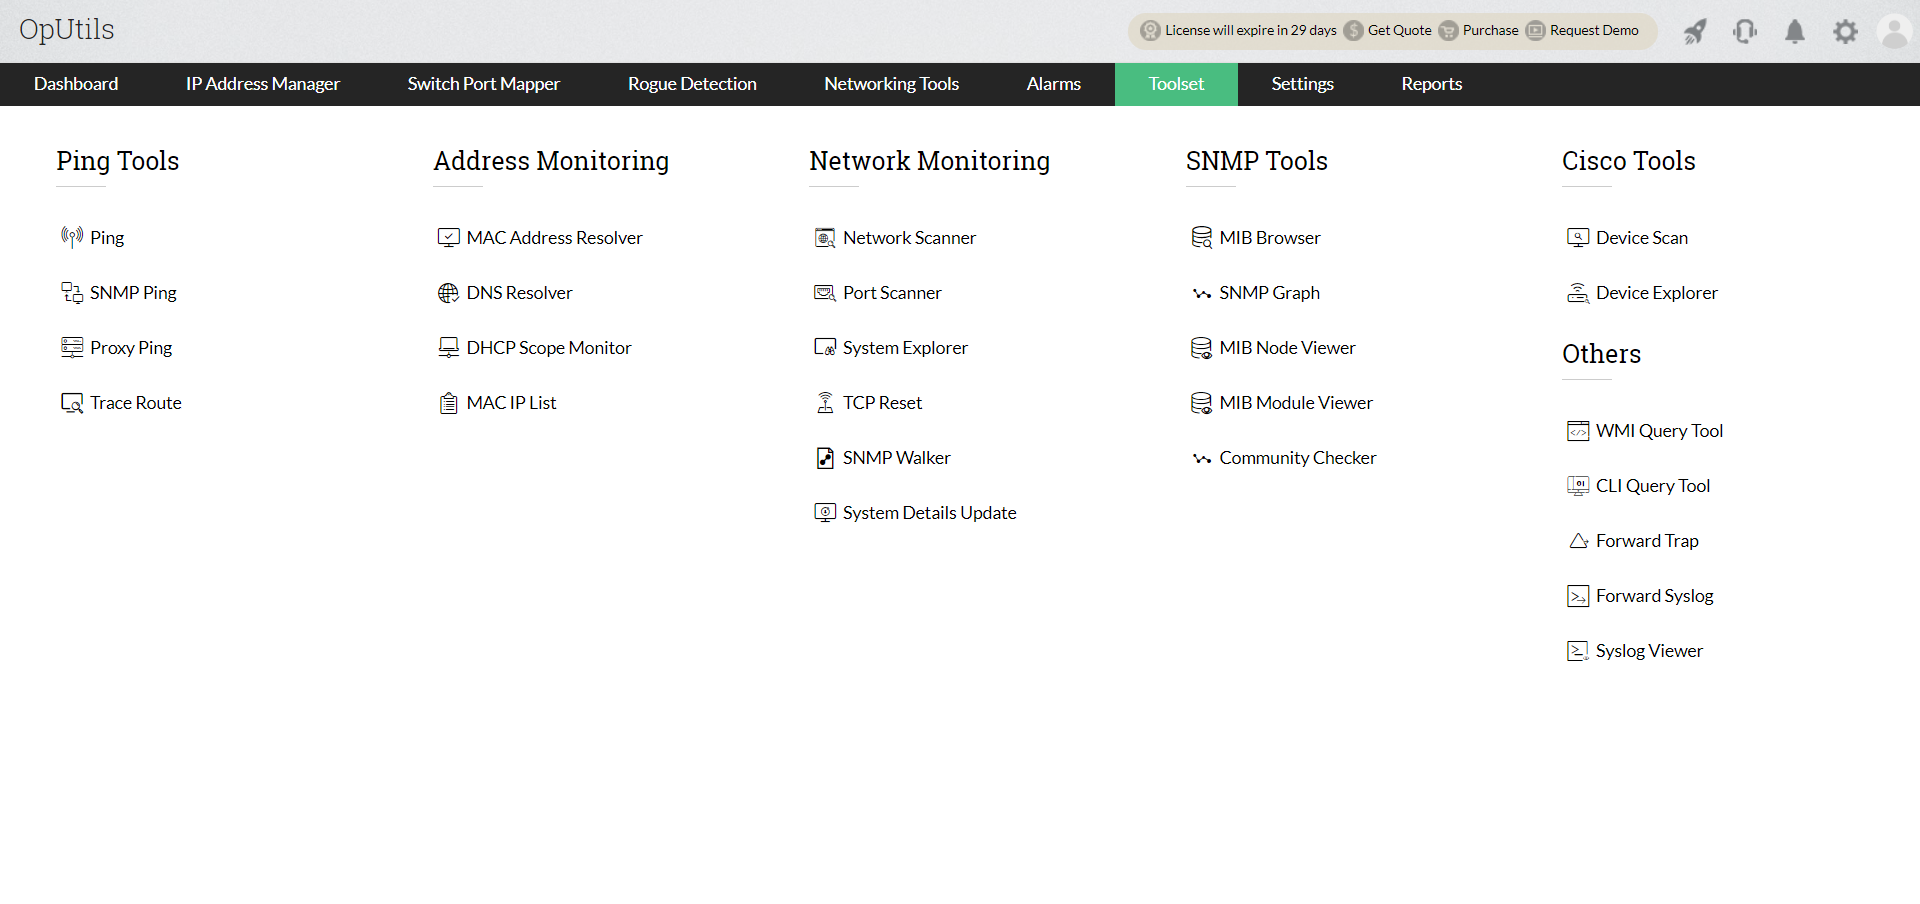 Switch Port Mapper - Network Tools